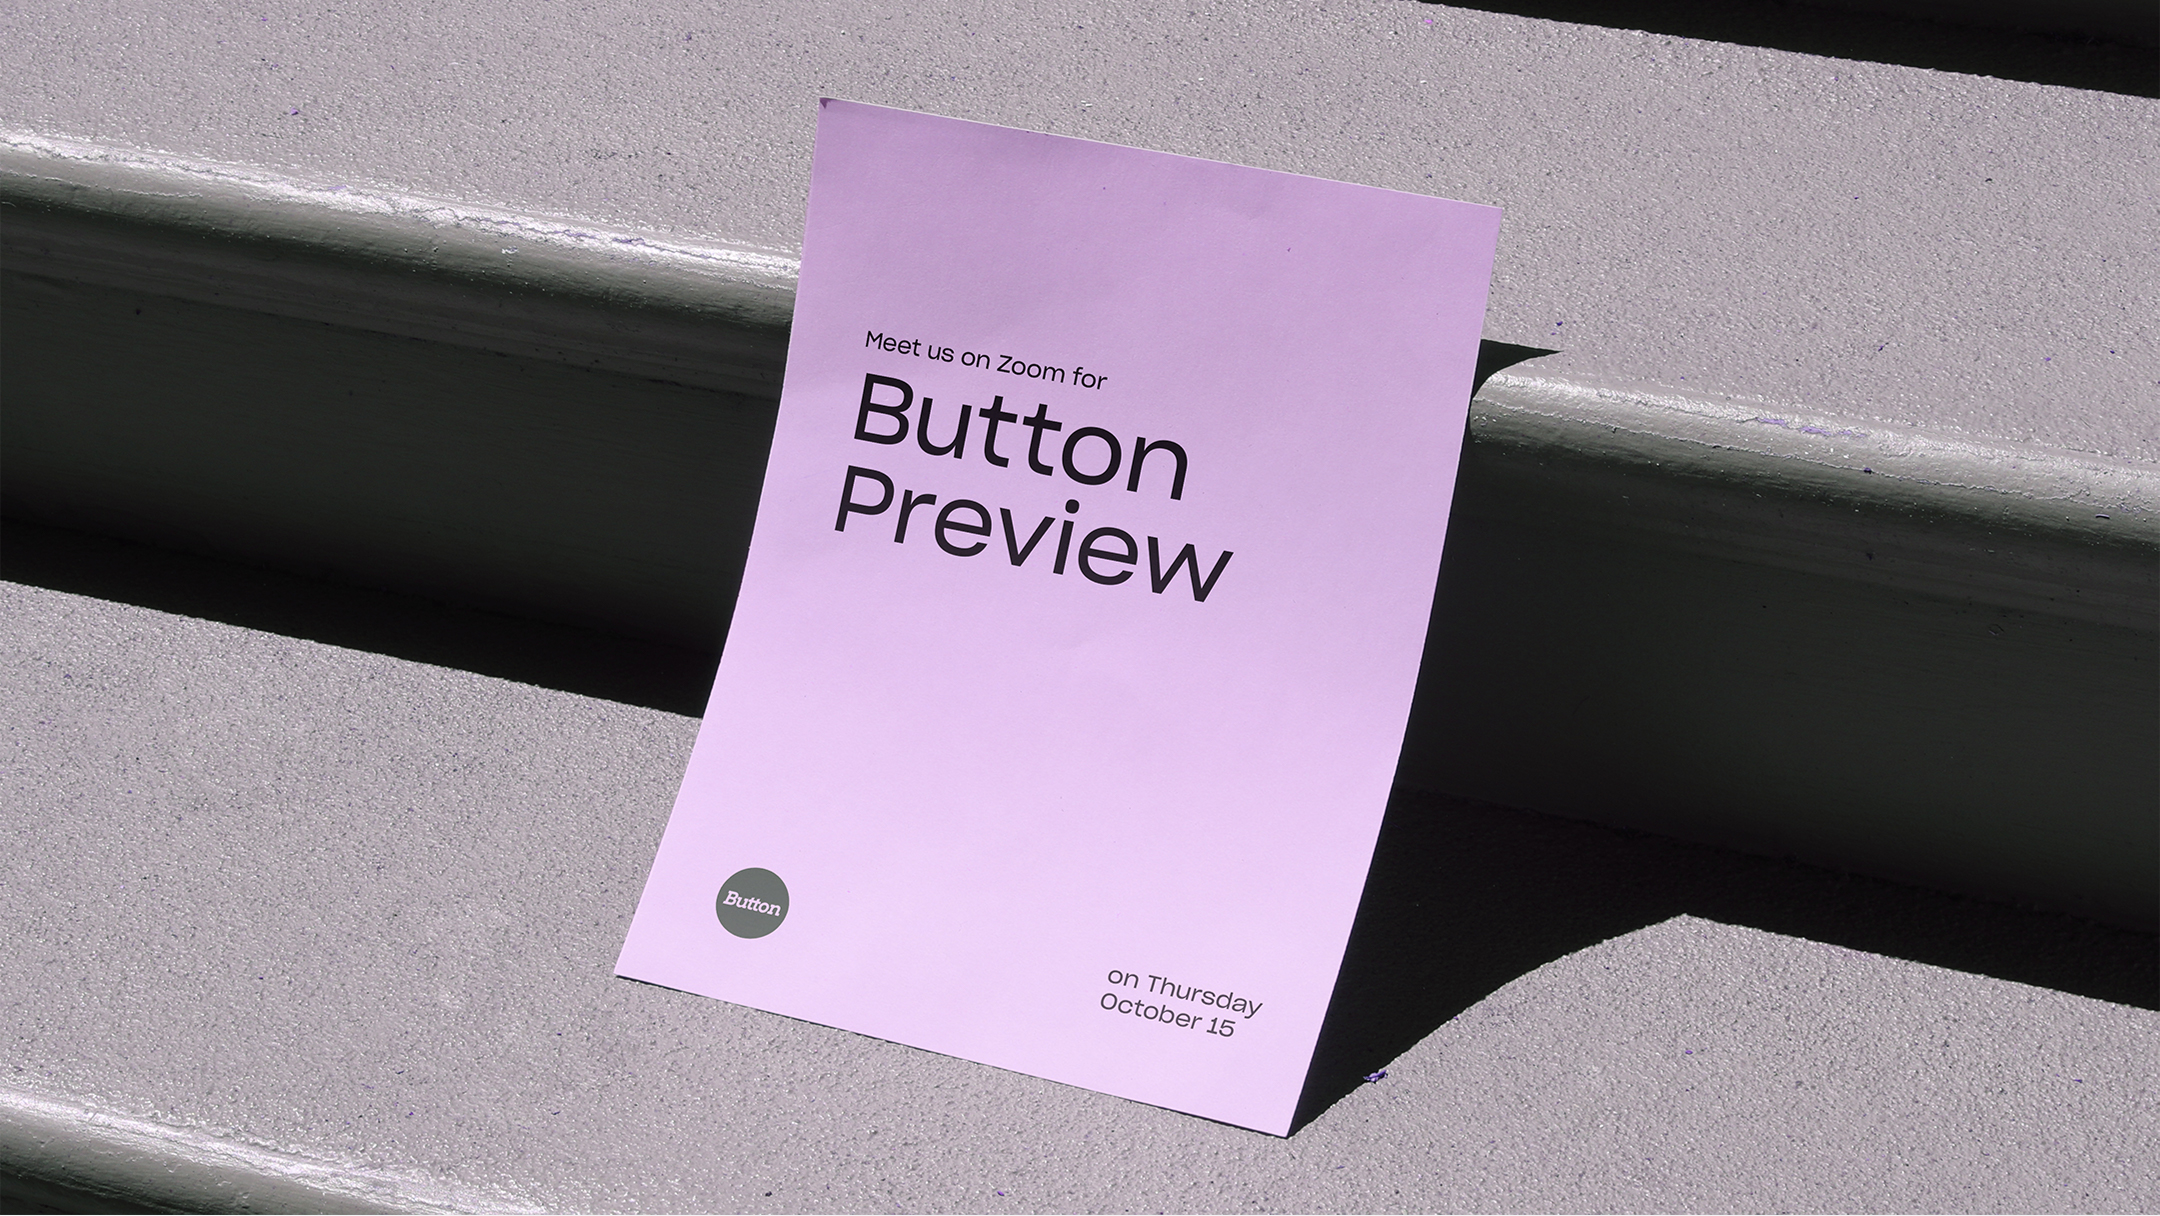 Button Preview Poster